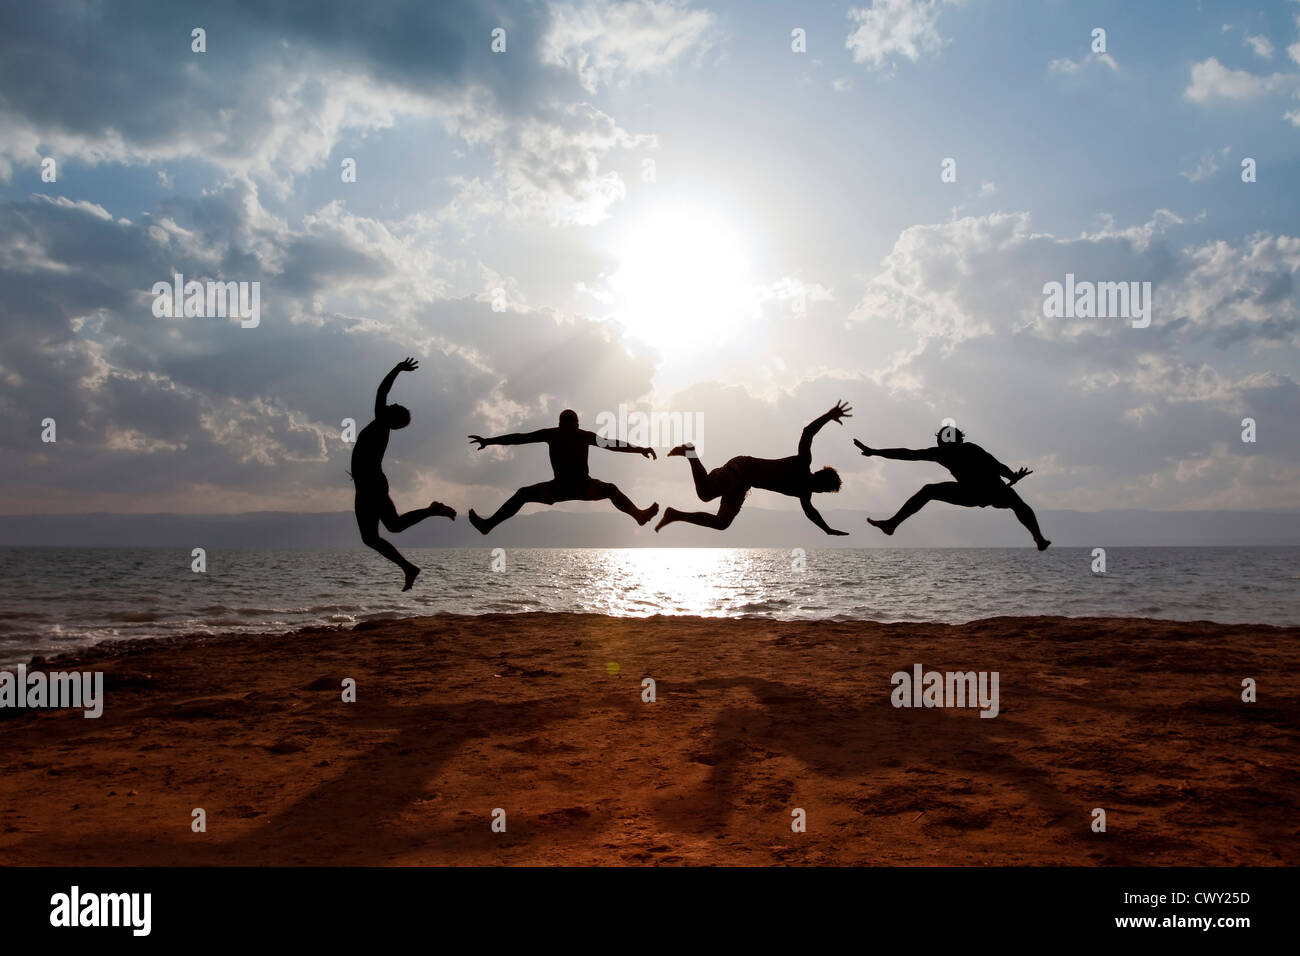 Surreal acrobatic activity - Stock Image